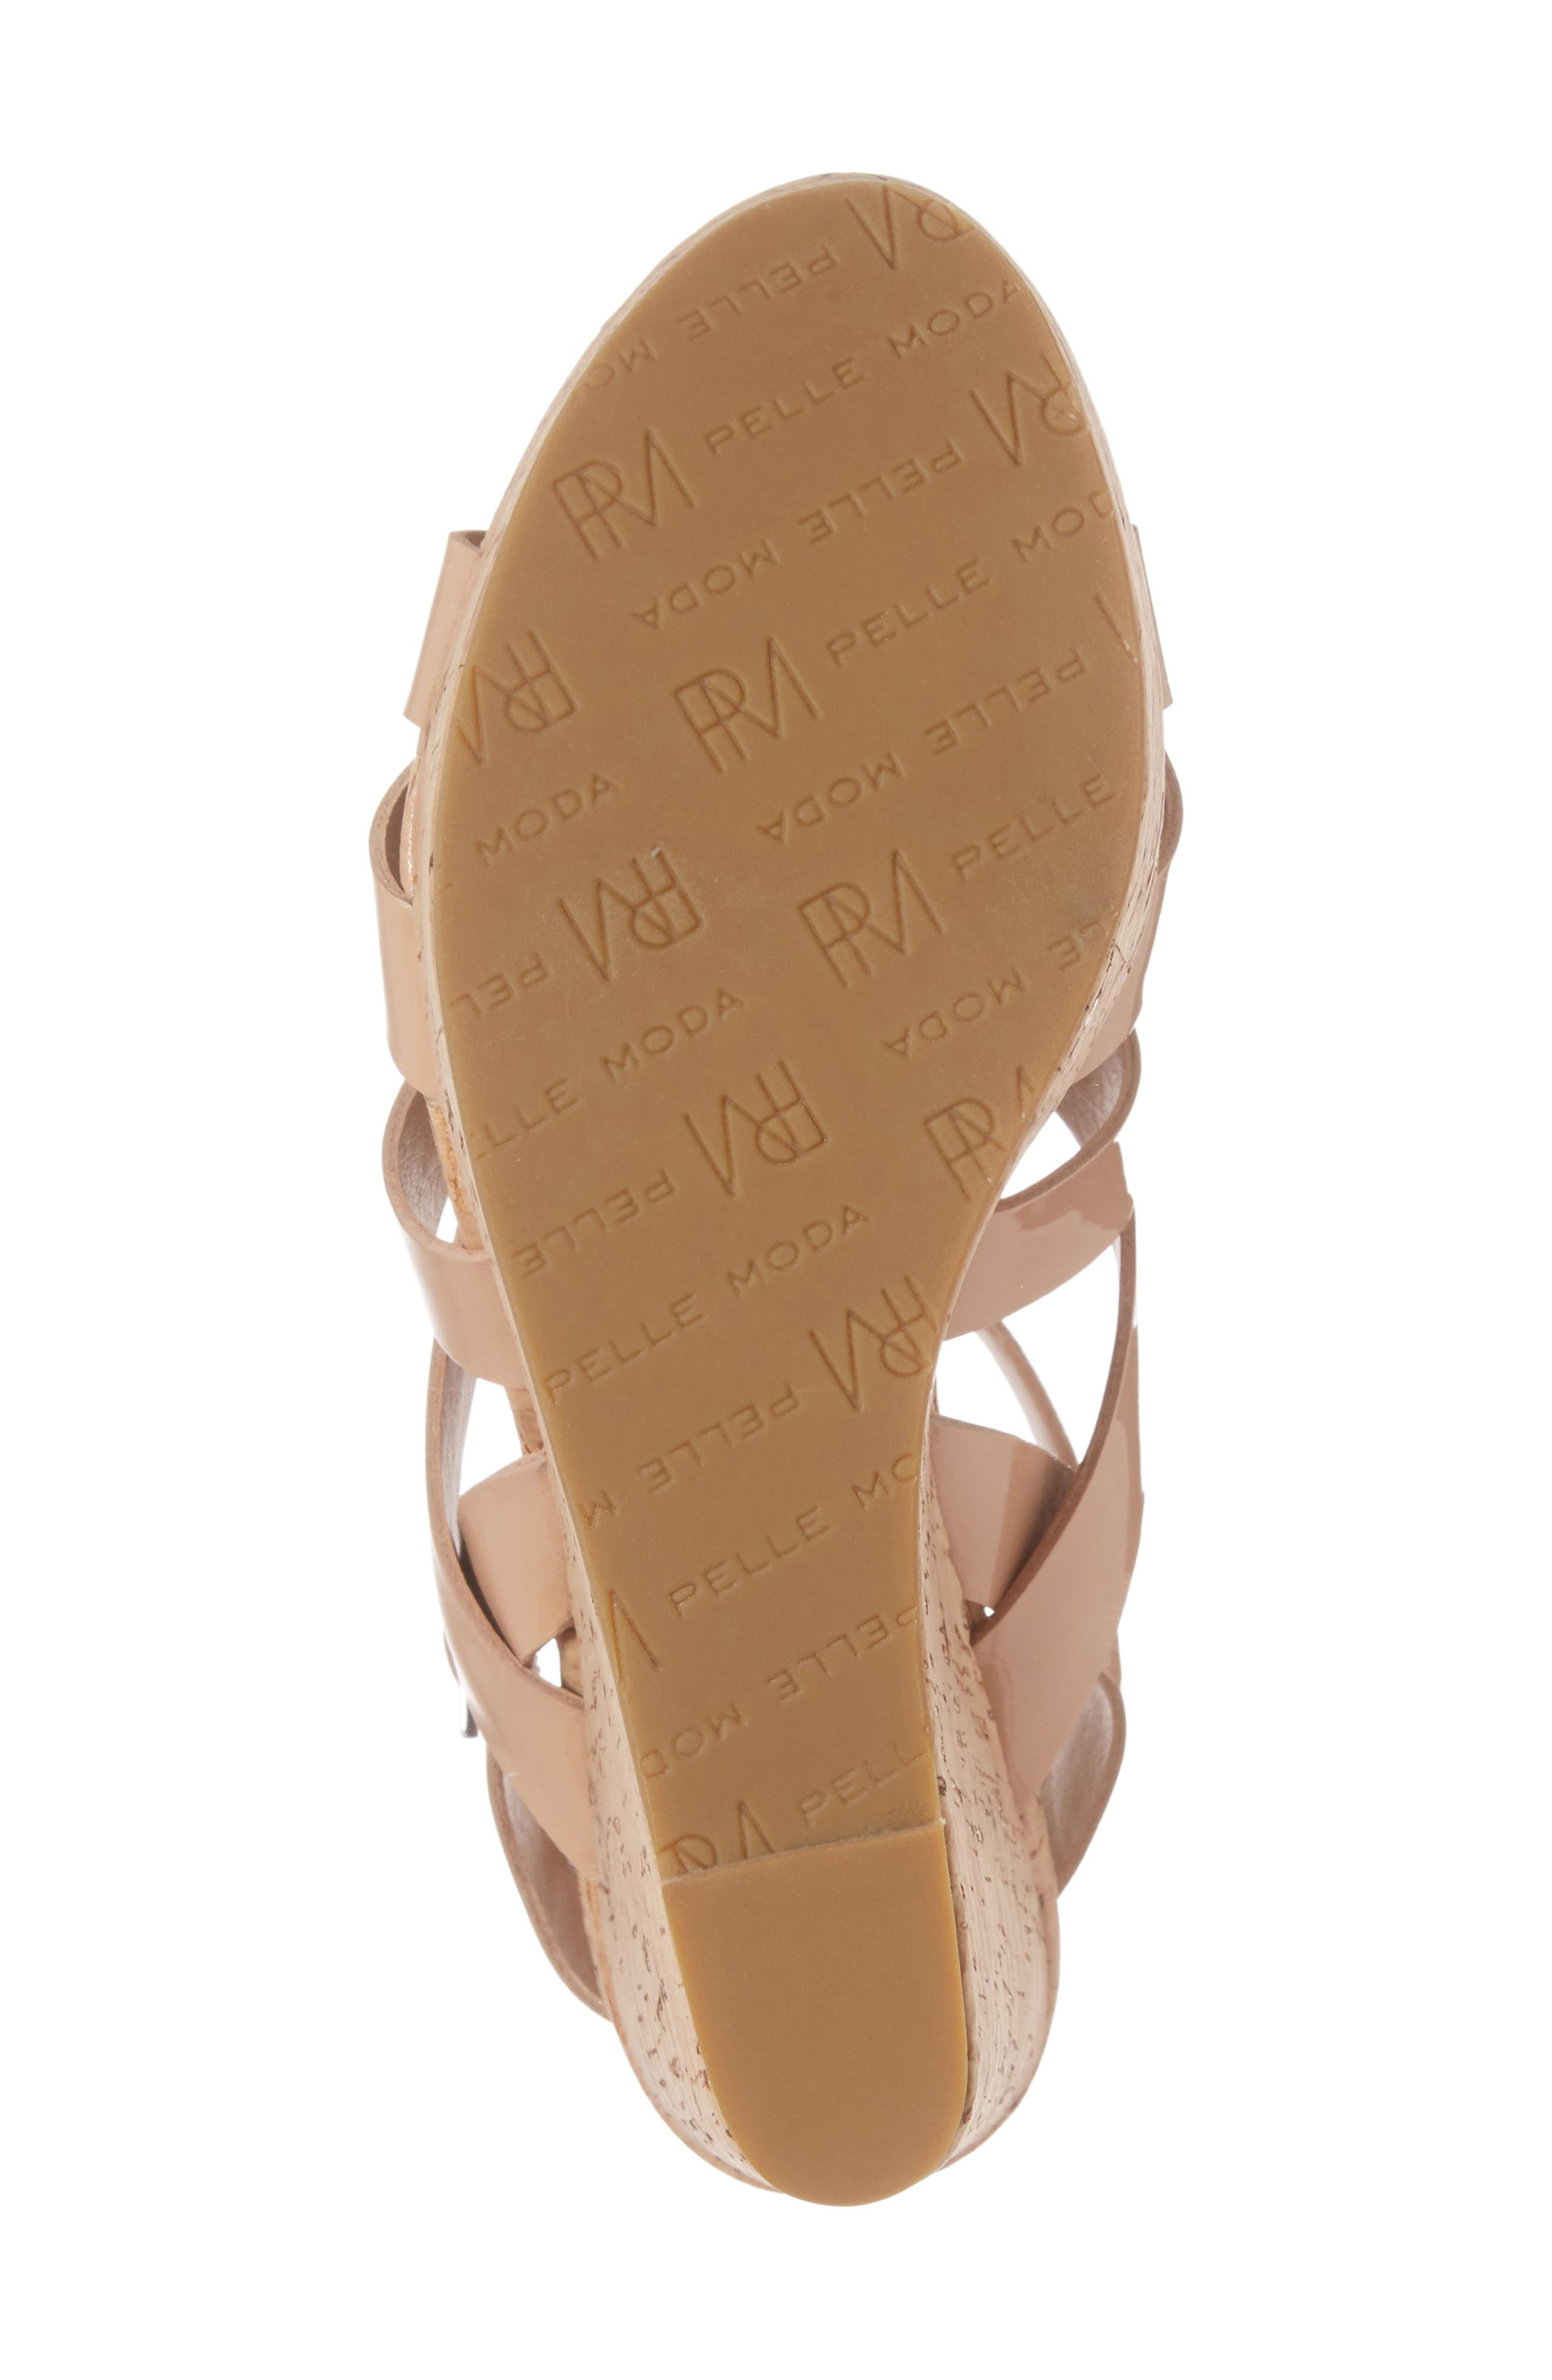 Rayjay Wedge Sandal,                             Alternate thumbnail 22, color,